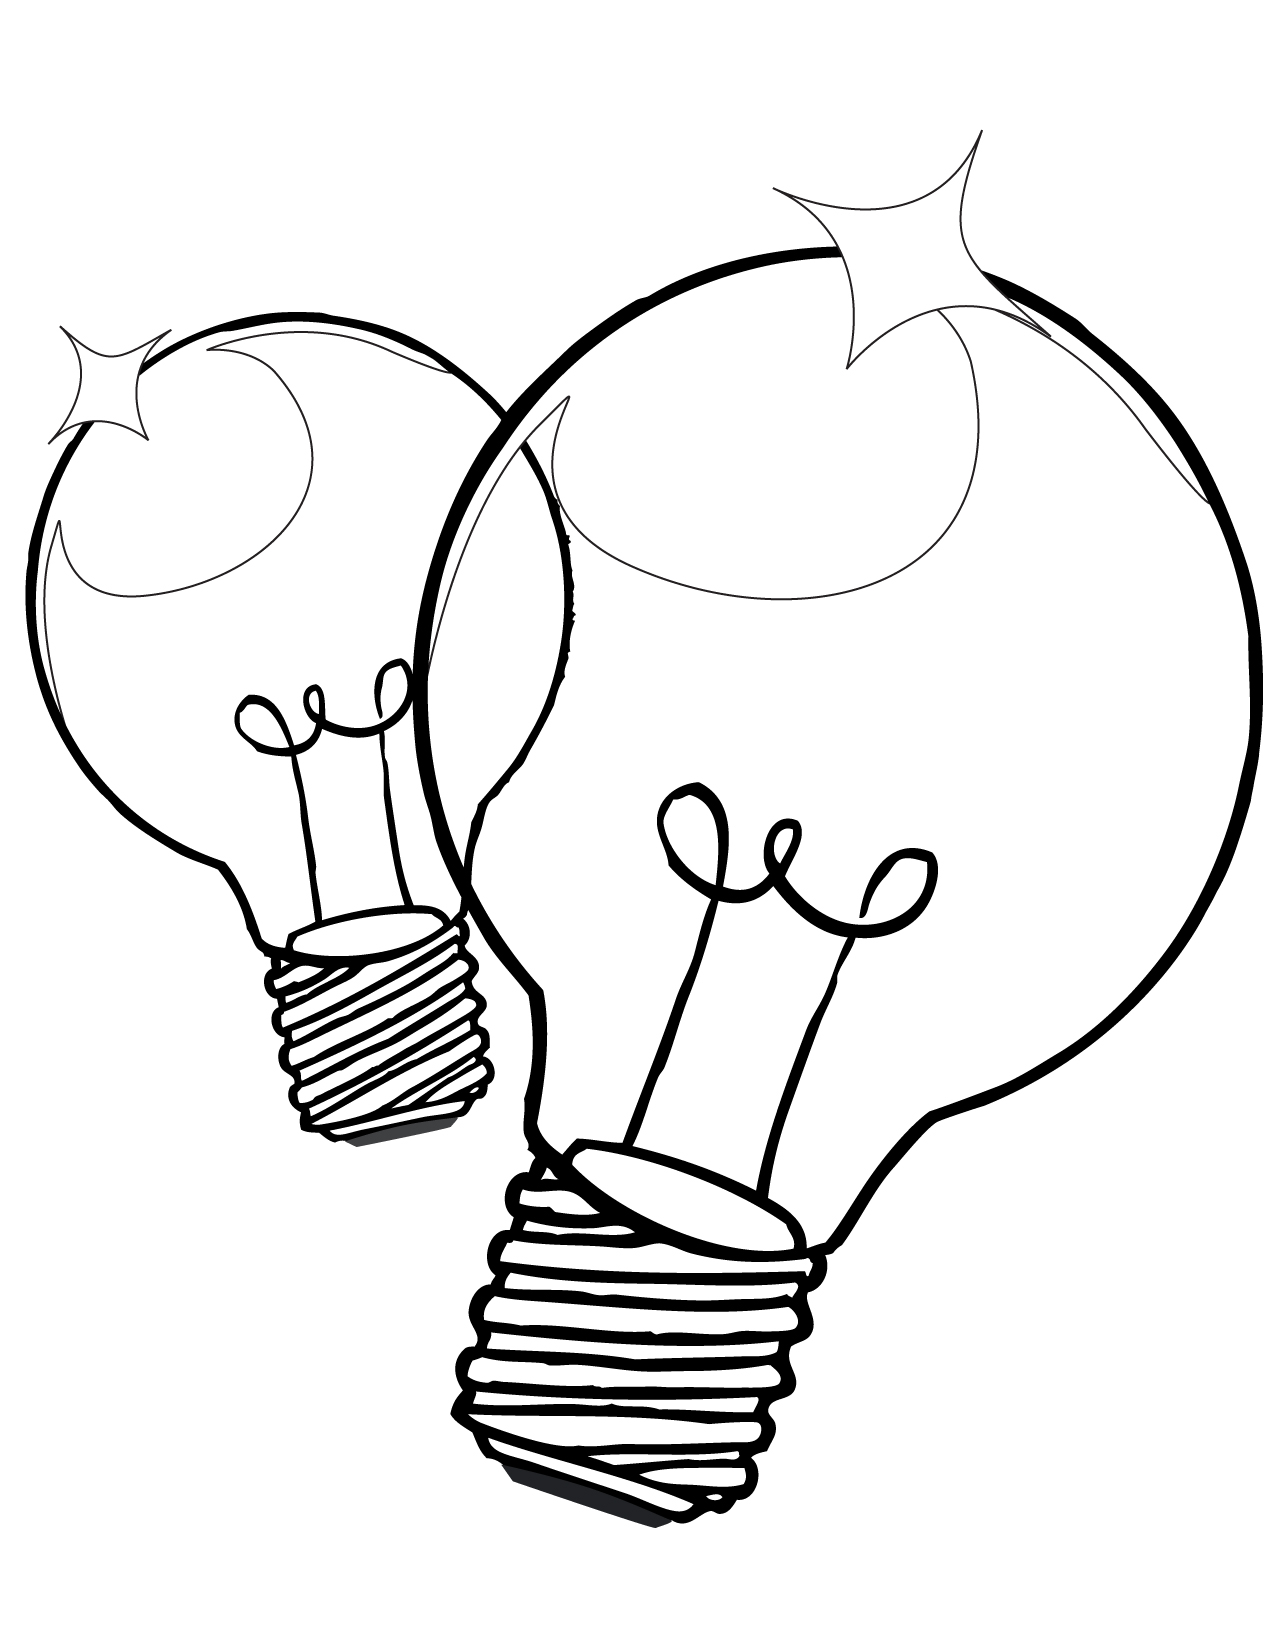 Light Bulb Coloring Pages Clipart Best Printable Lights Coloring Pages